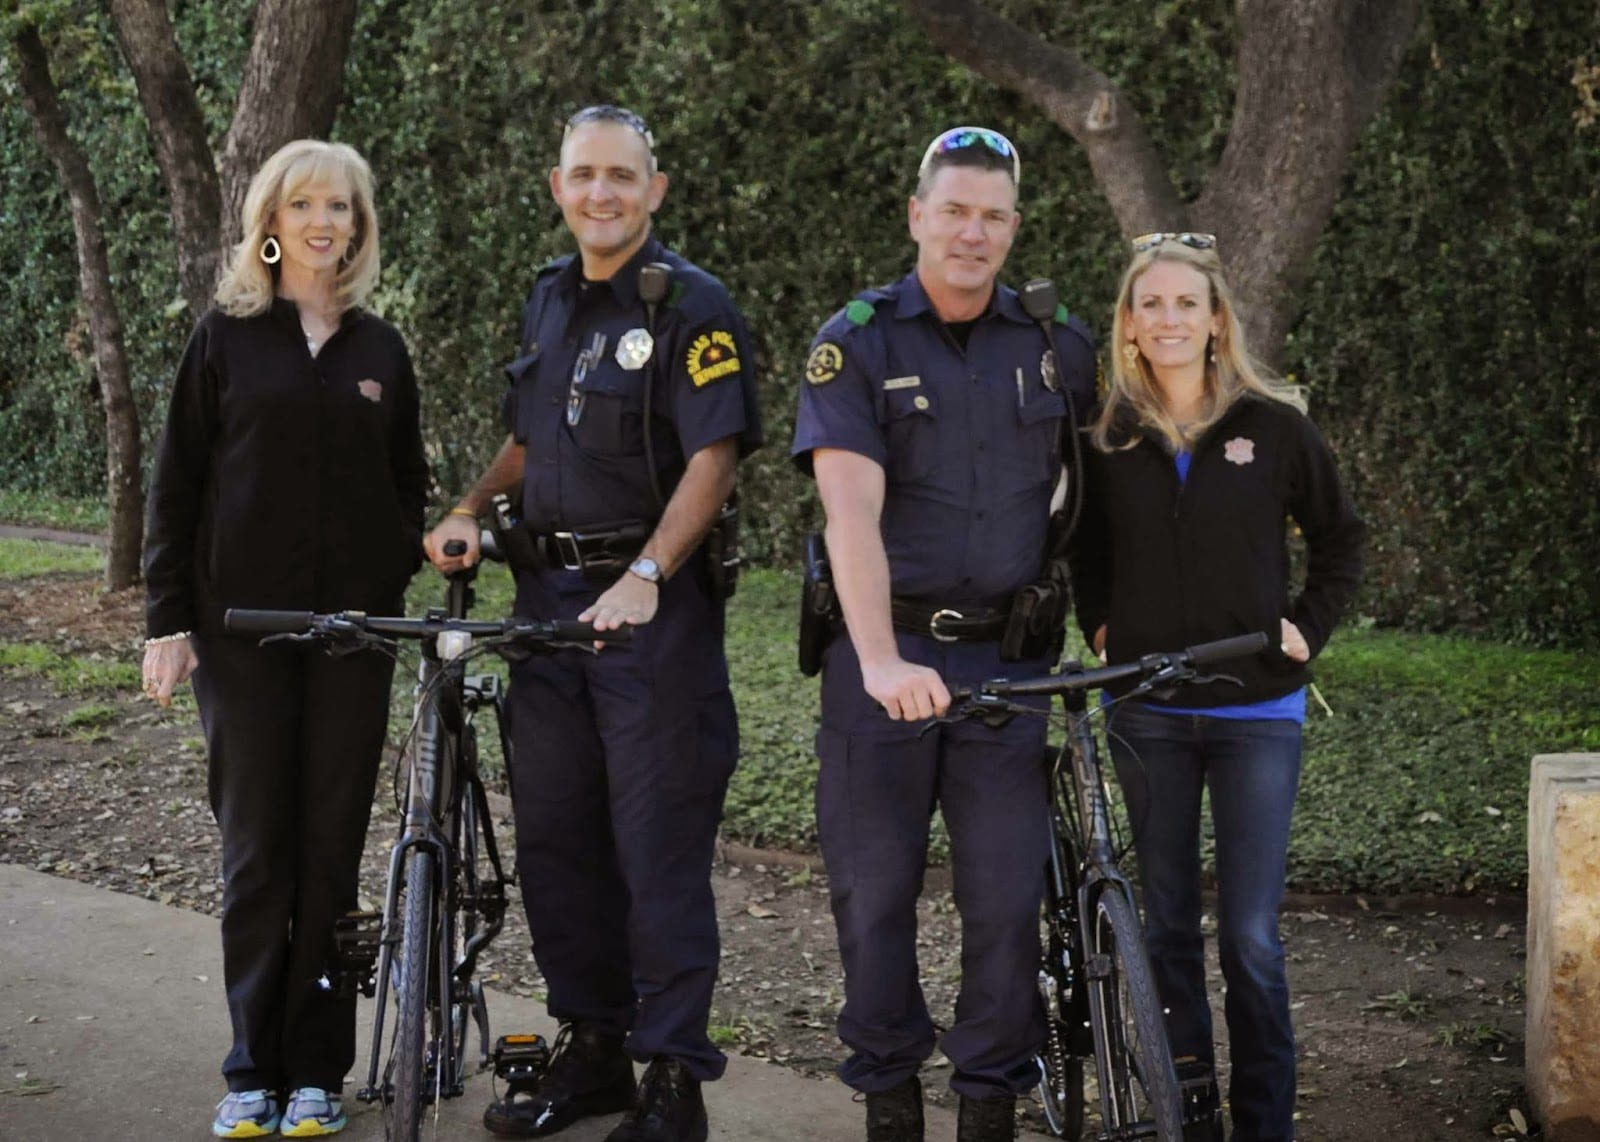 Executive Director Robin Baldock, Police Officers Phil Misgrove and Rob Readdy and Membership and Marketing Director Lauren Whitson with new donated bikes.